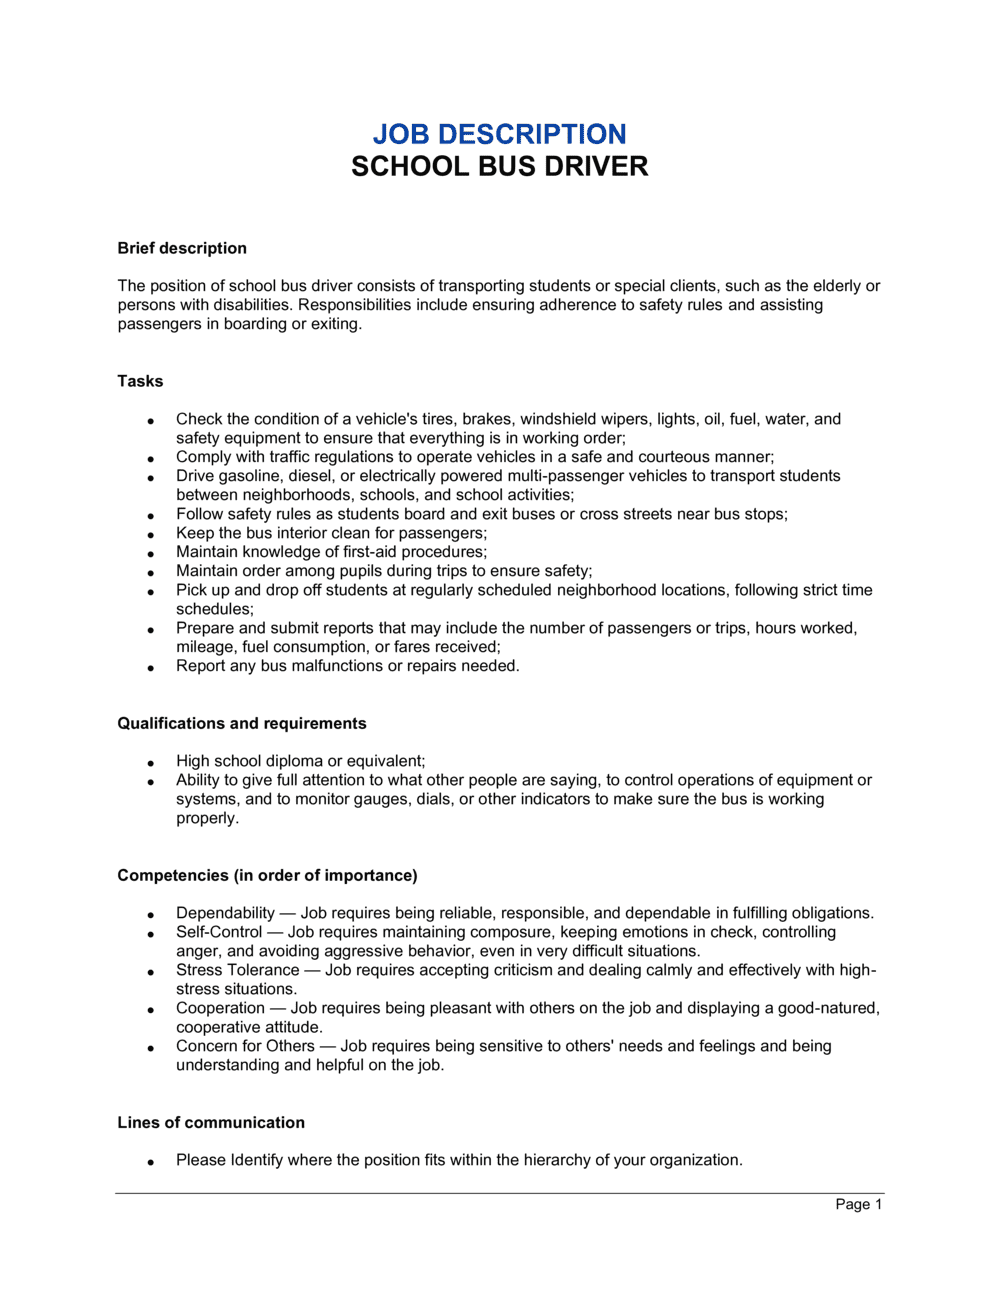 Business-in-a-Box's Bus Driver School Job Description Template